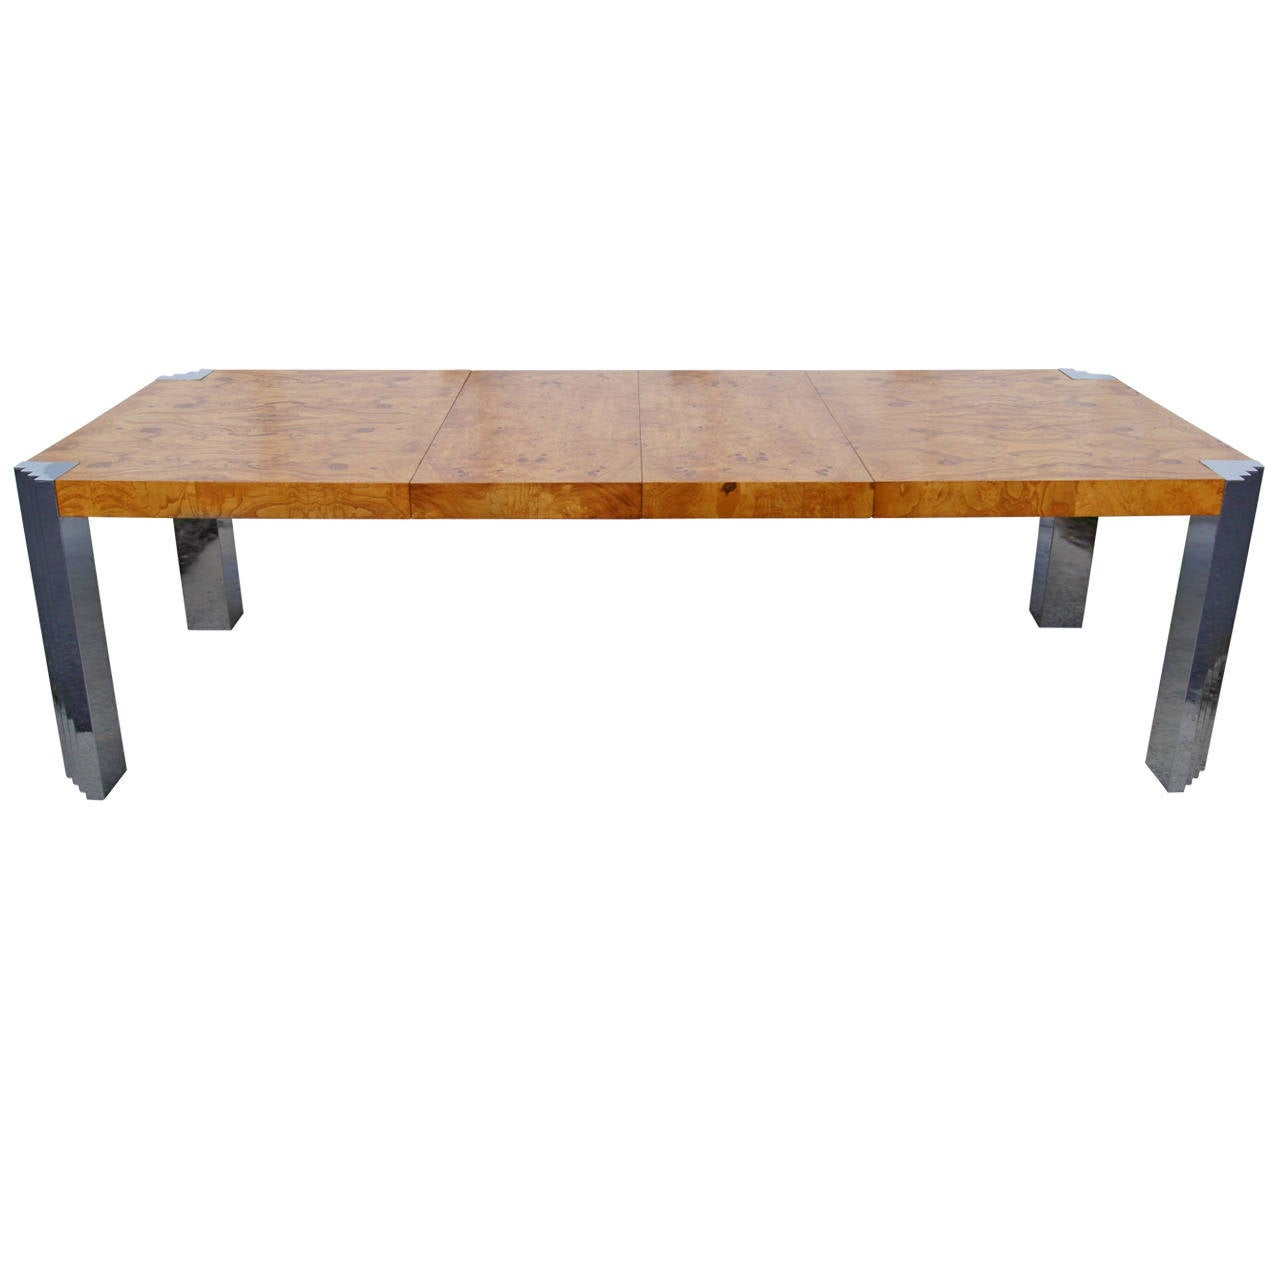 Burl Wood and Chrome Dining Table by Milo Baughman for Pace